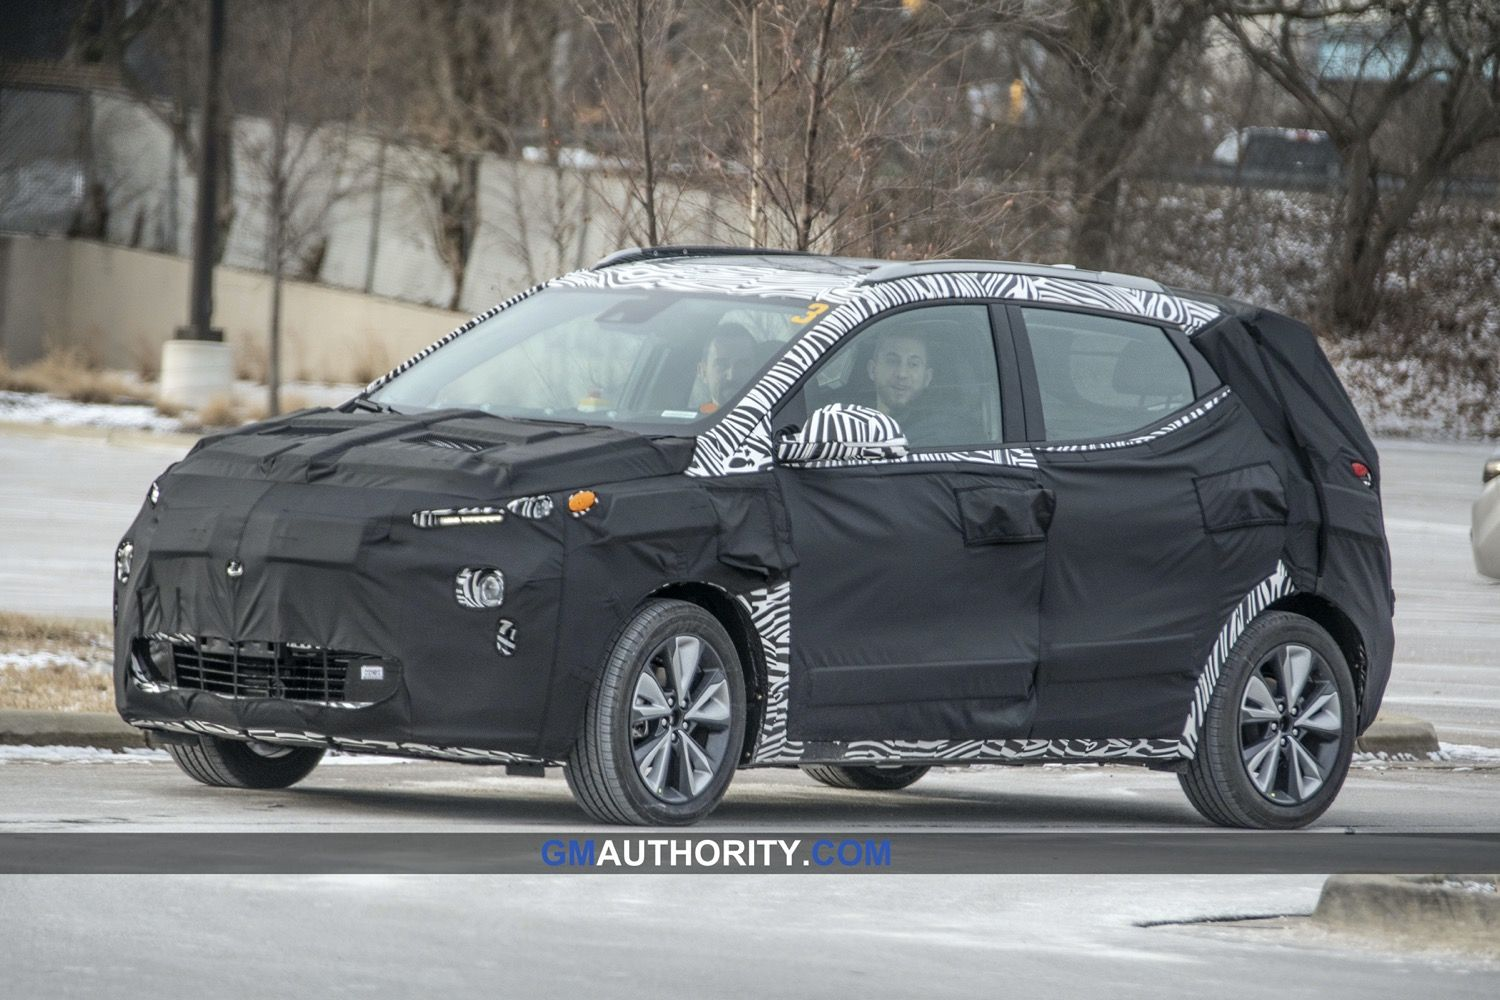 2022 Chevrolet Bolt Euv Expected Features Interior And Exterior Spy Shots